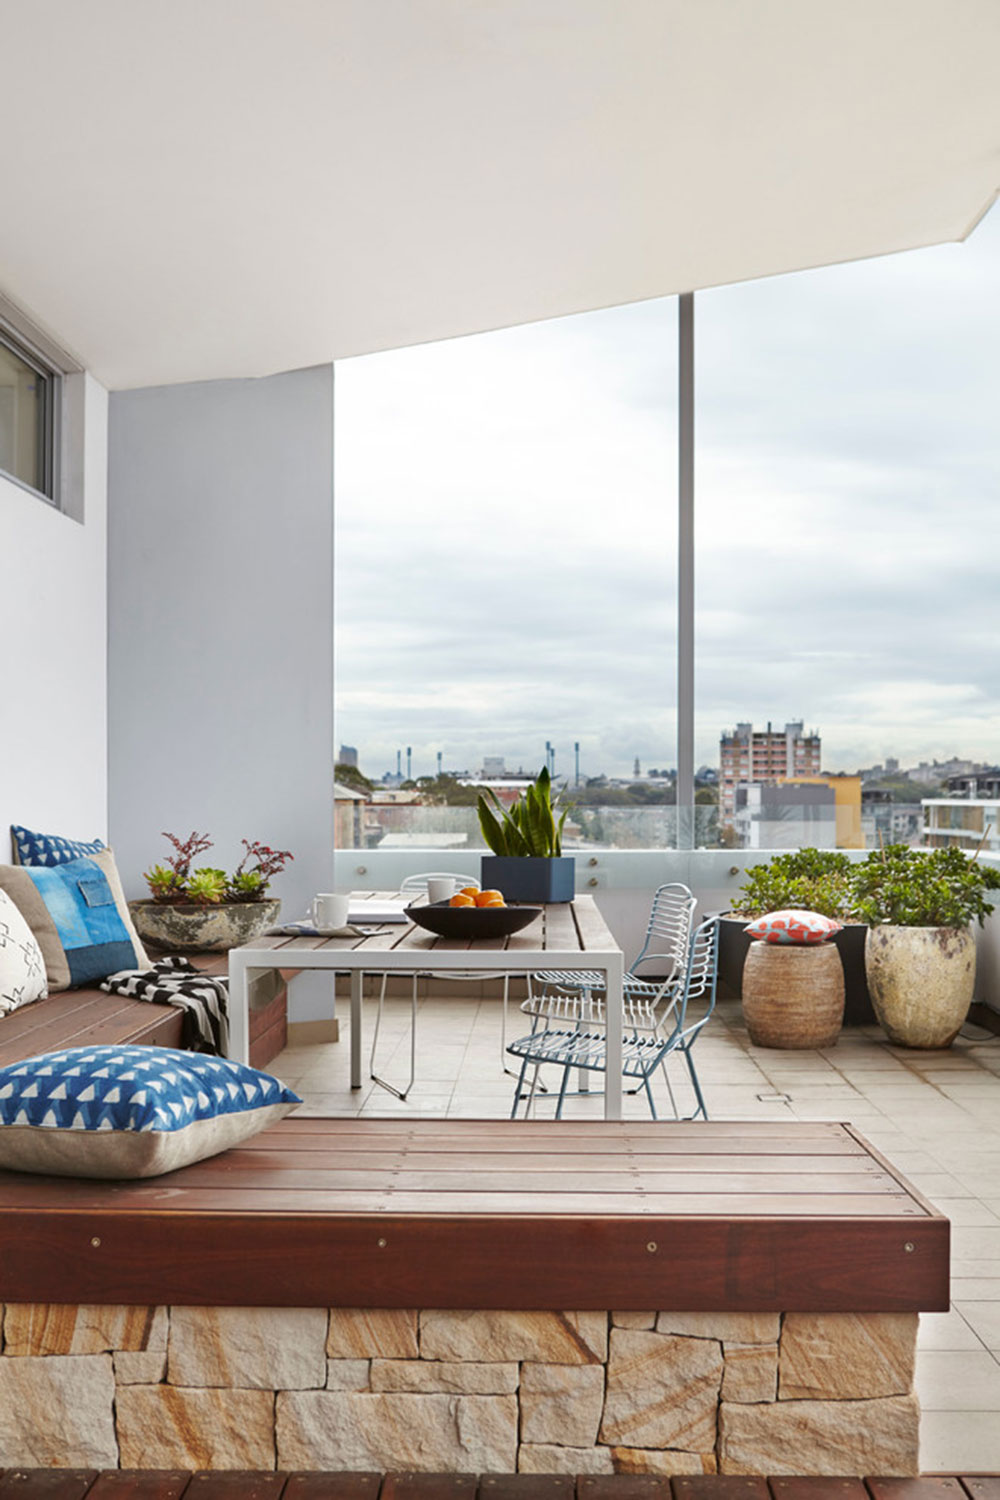 Tips for building a balcony garden in your home5 tips for building a balcony garden in your home